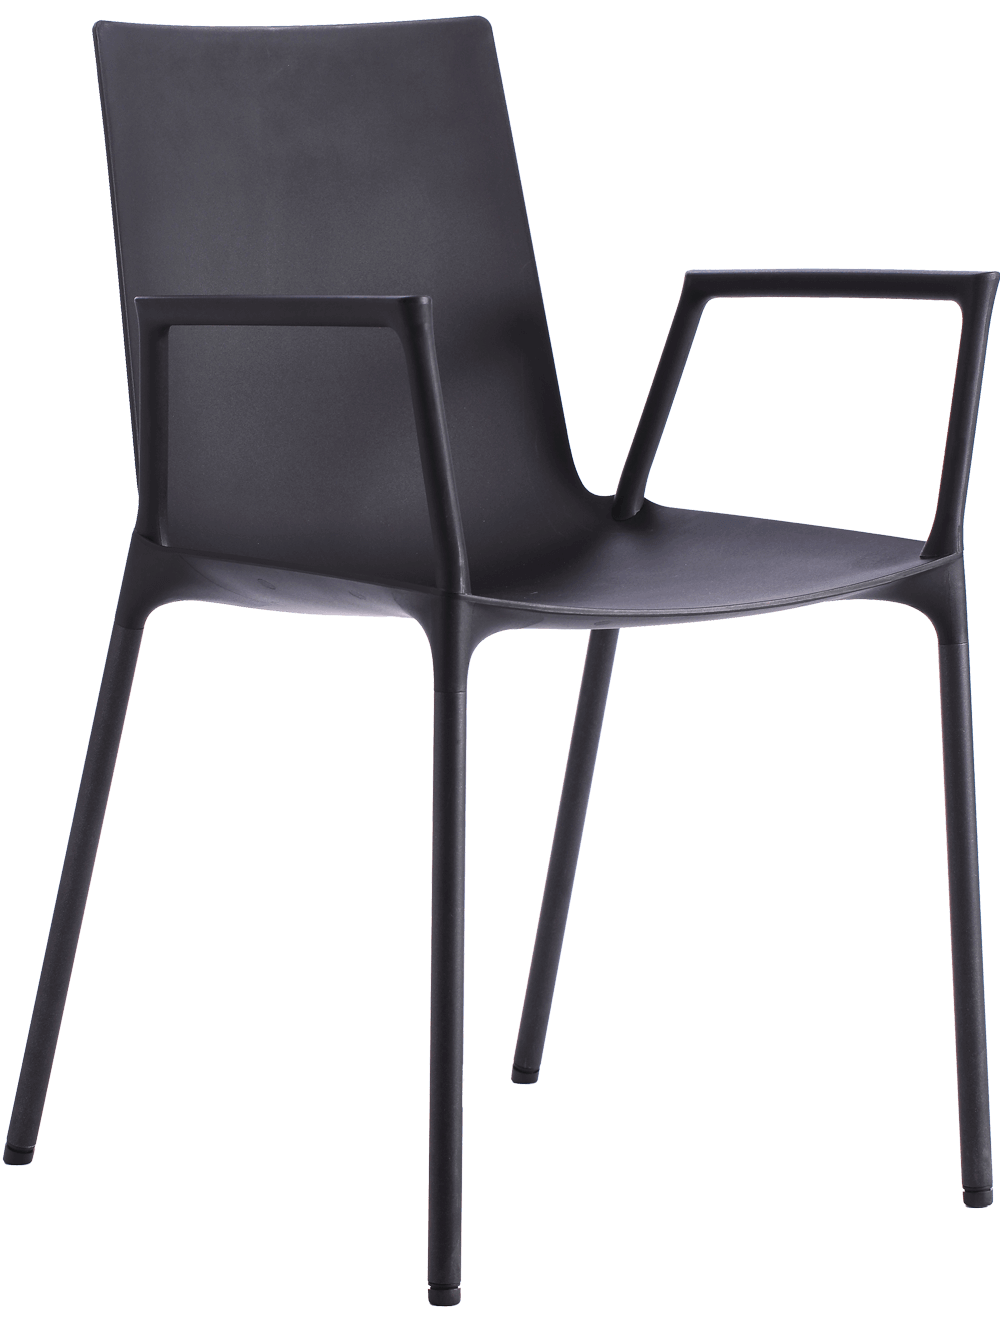 LIM Chair